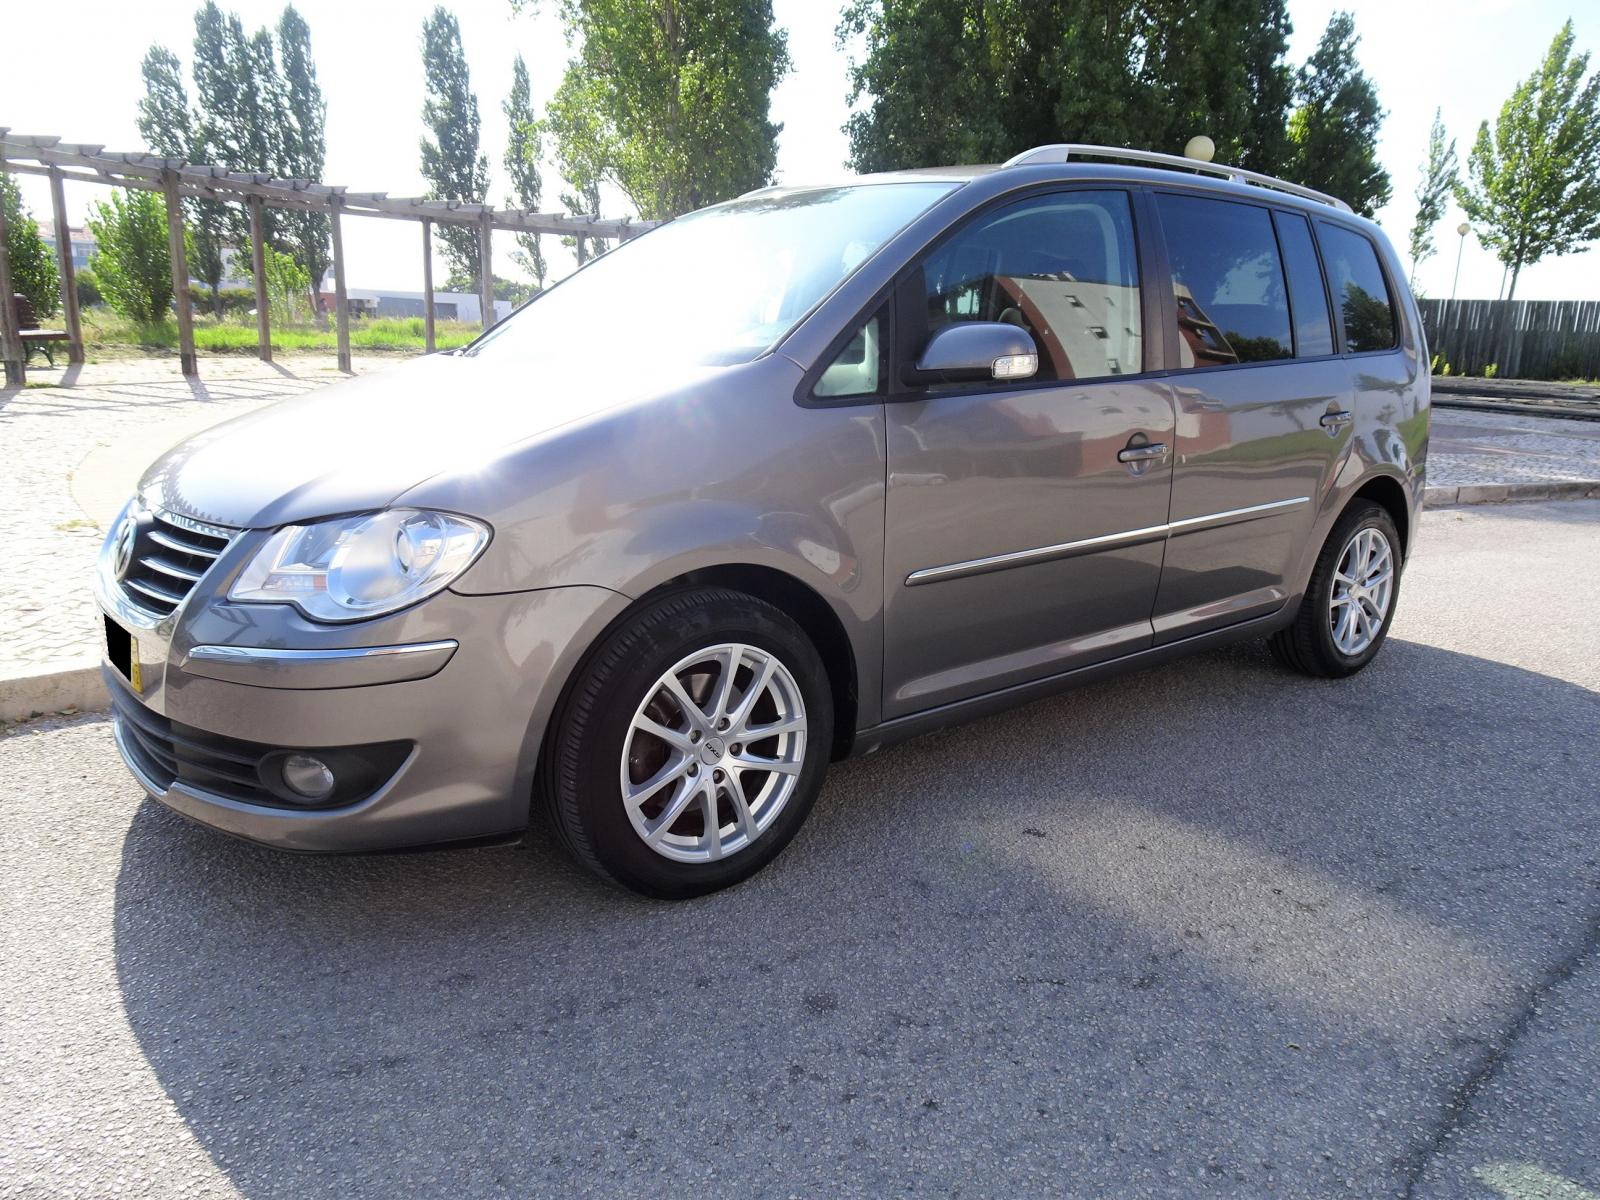 VW-Touran 1.9 TDI Bluemotion 7 Lugares